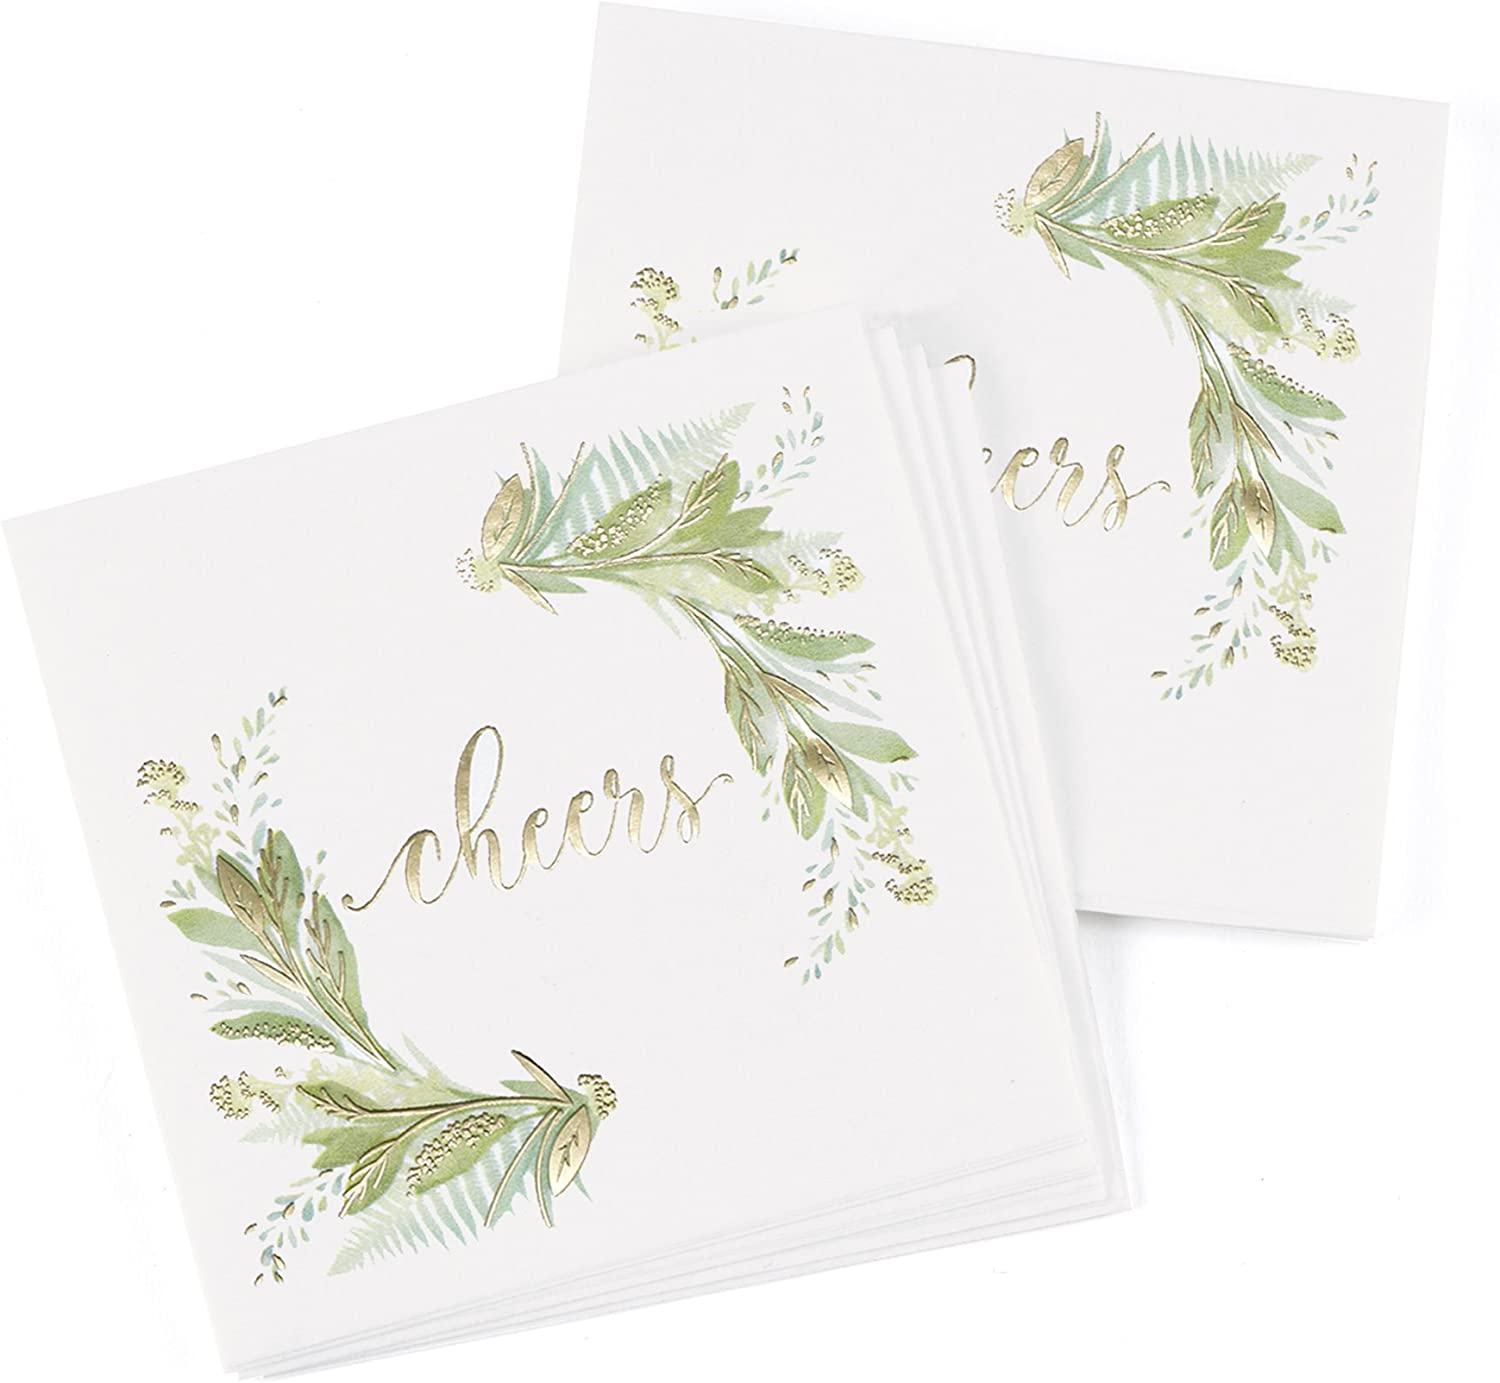 Hortense B. Hewitt Party Paper Napkins, 4.75-Inch (Folded), Greenery